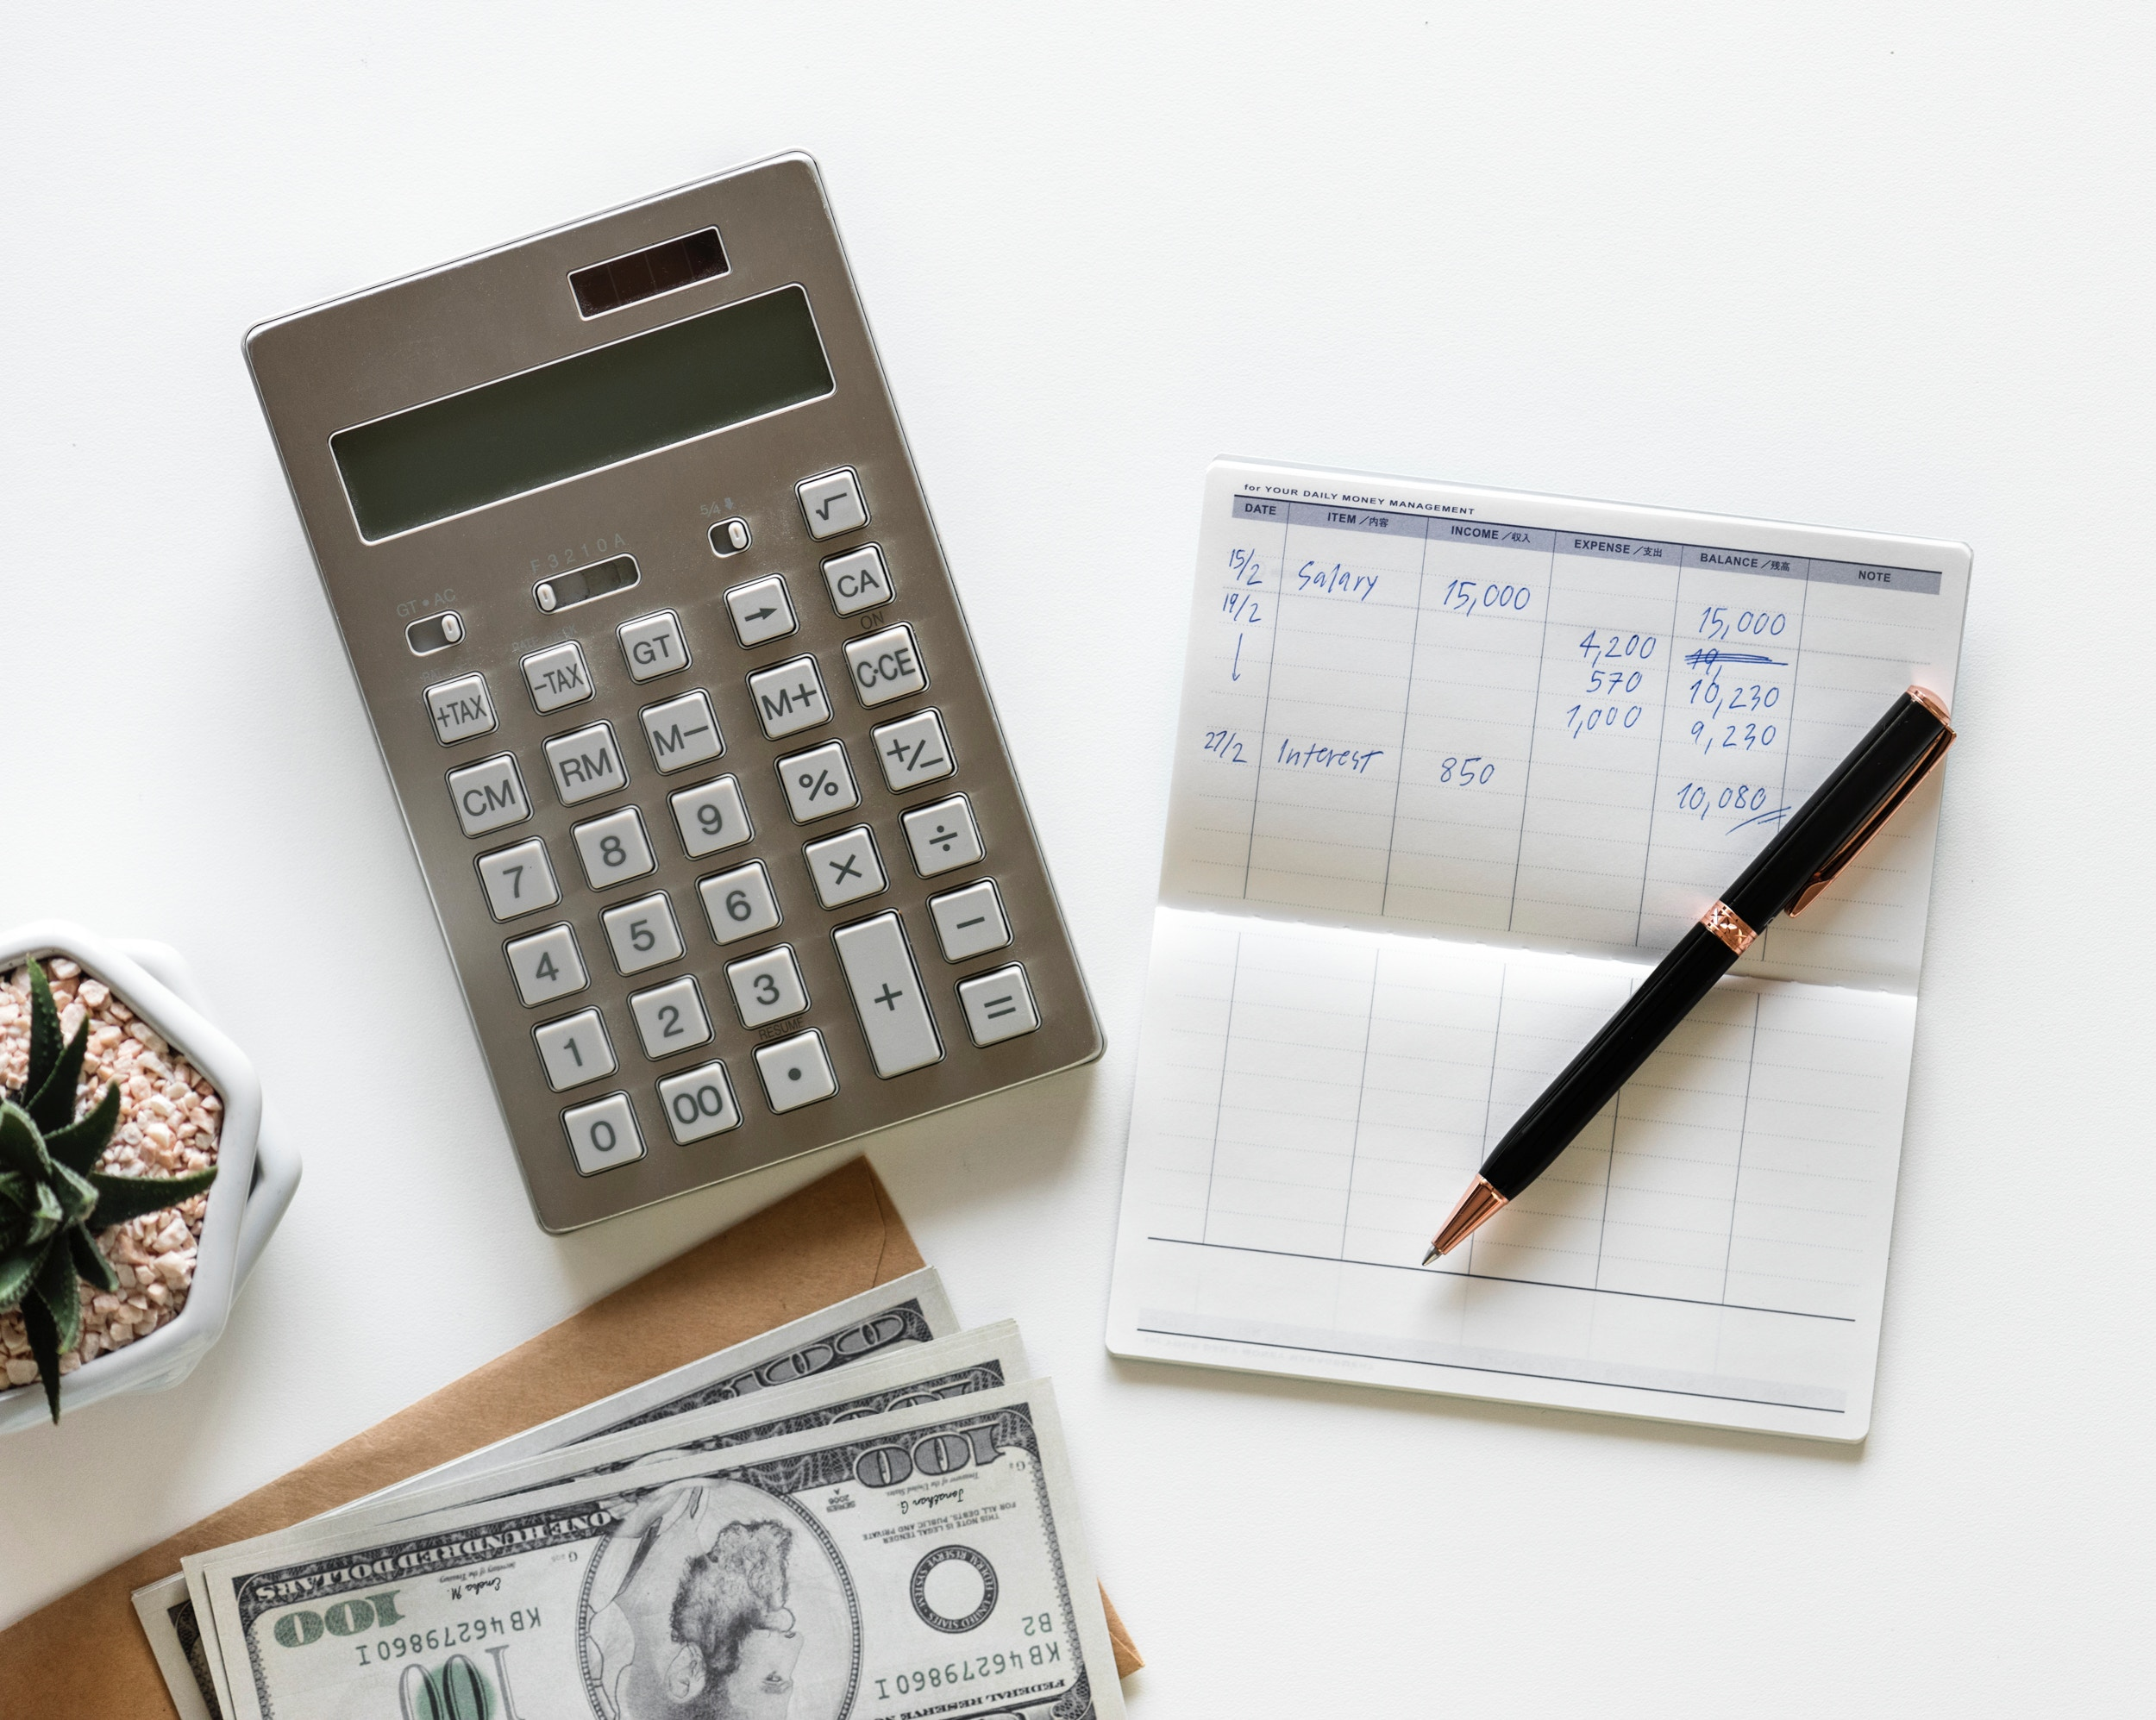 Ways to Get Maximum ROI on End-of-Year Budget Decisions